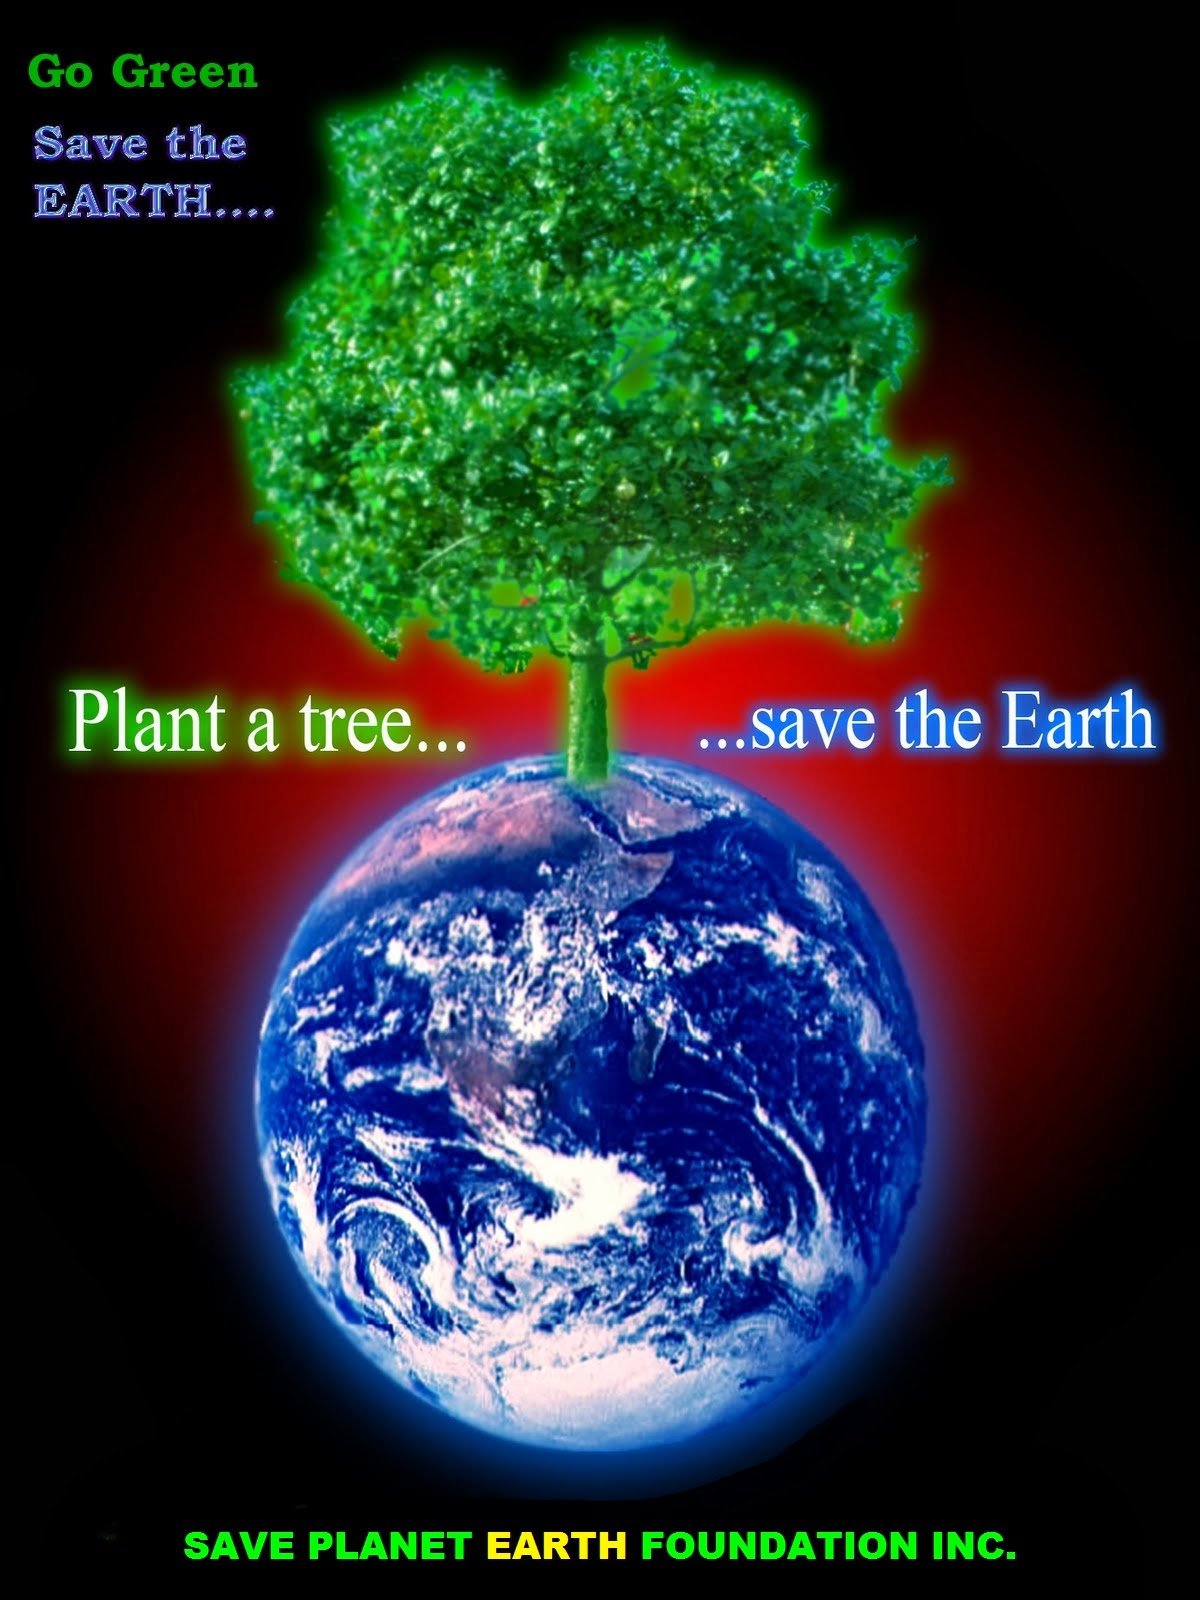 SAVE PLANET EARTH FOUNDATION INC.